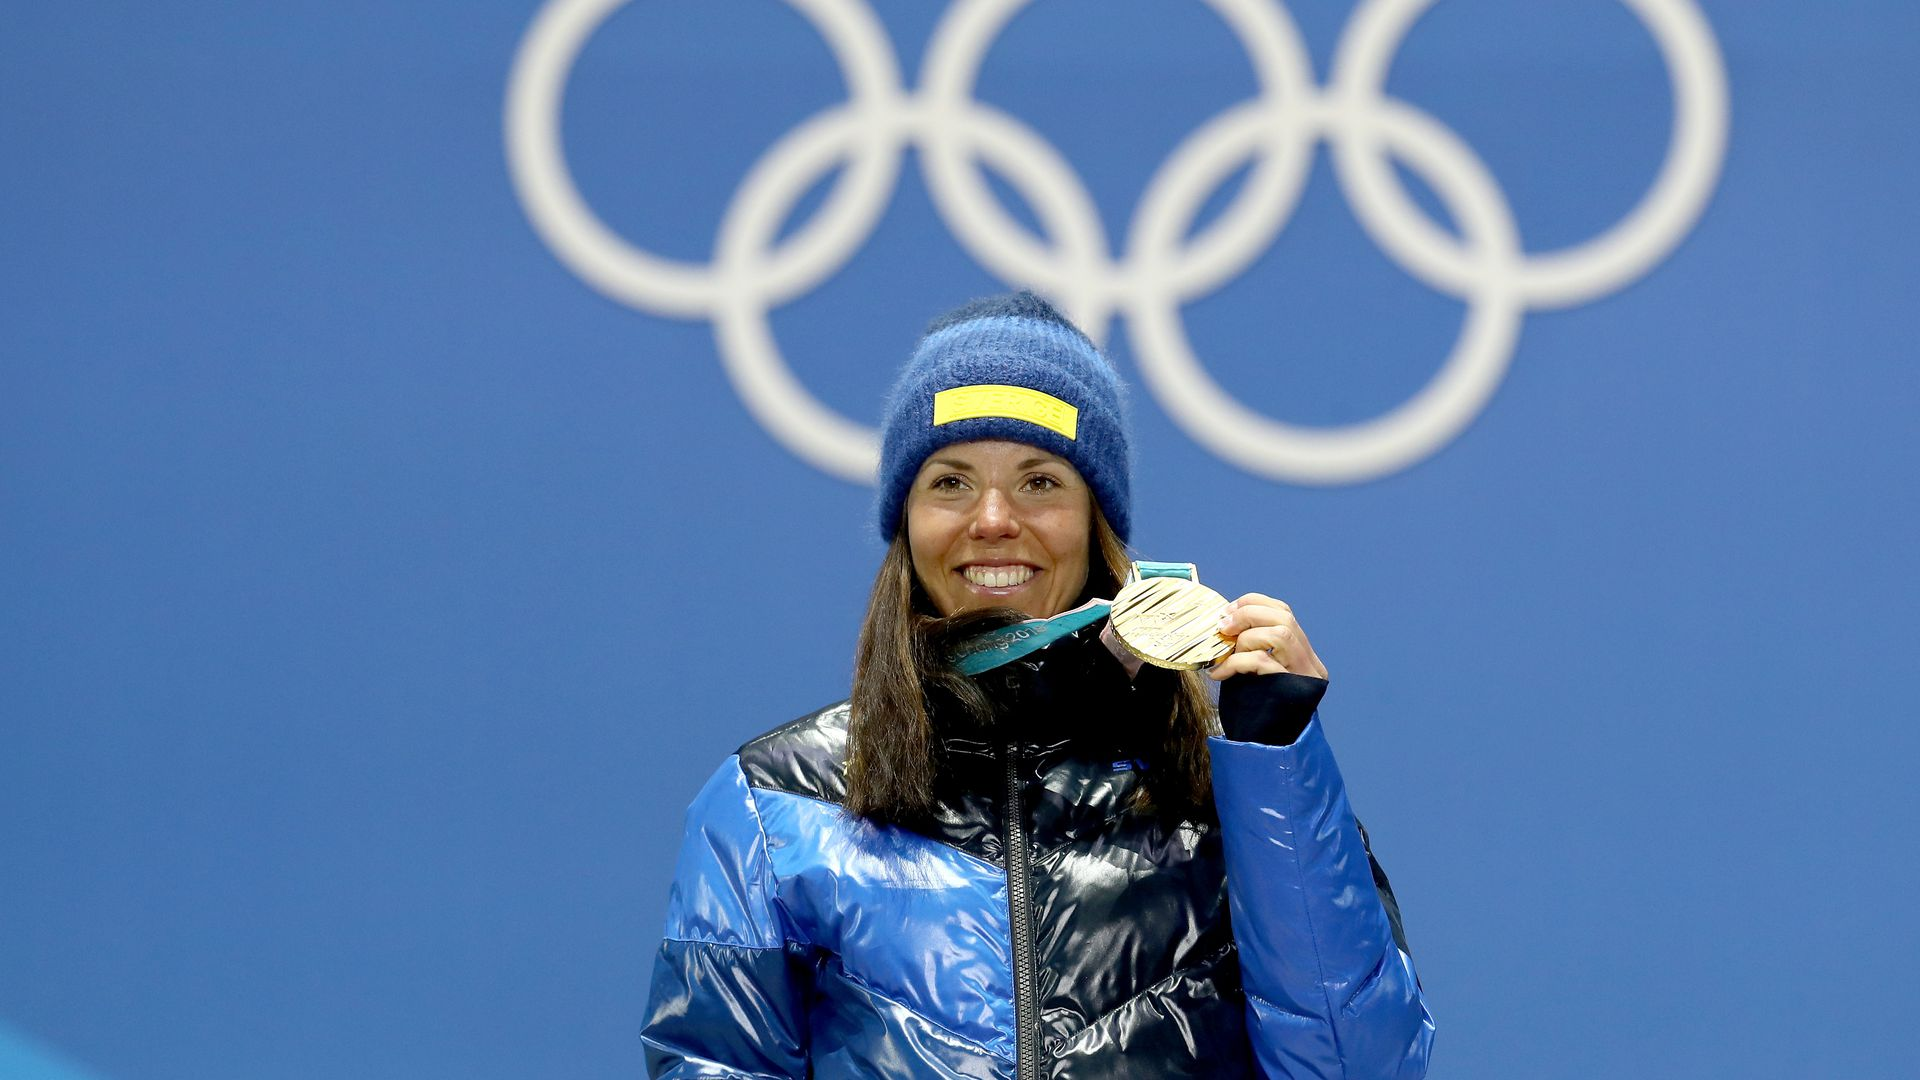 Gold medalist Charlotte Kalla of Sweden celebrates during the Medal Ceremony.